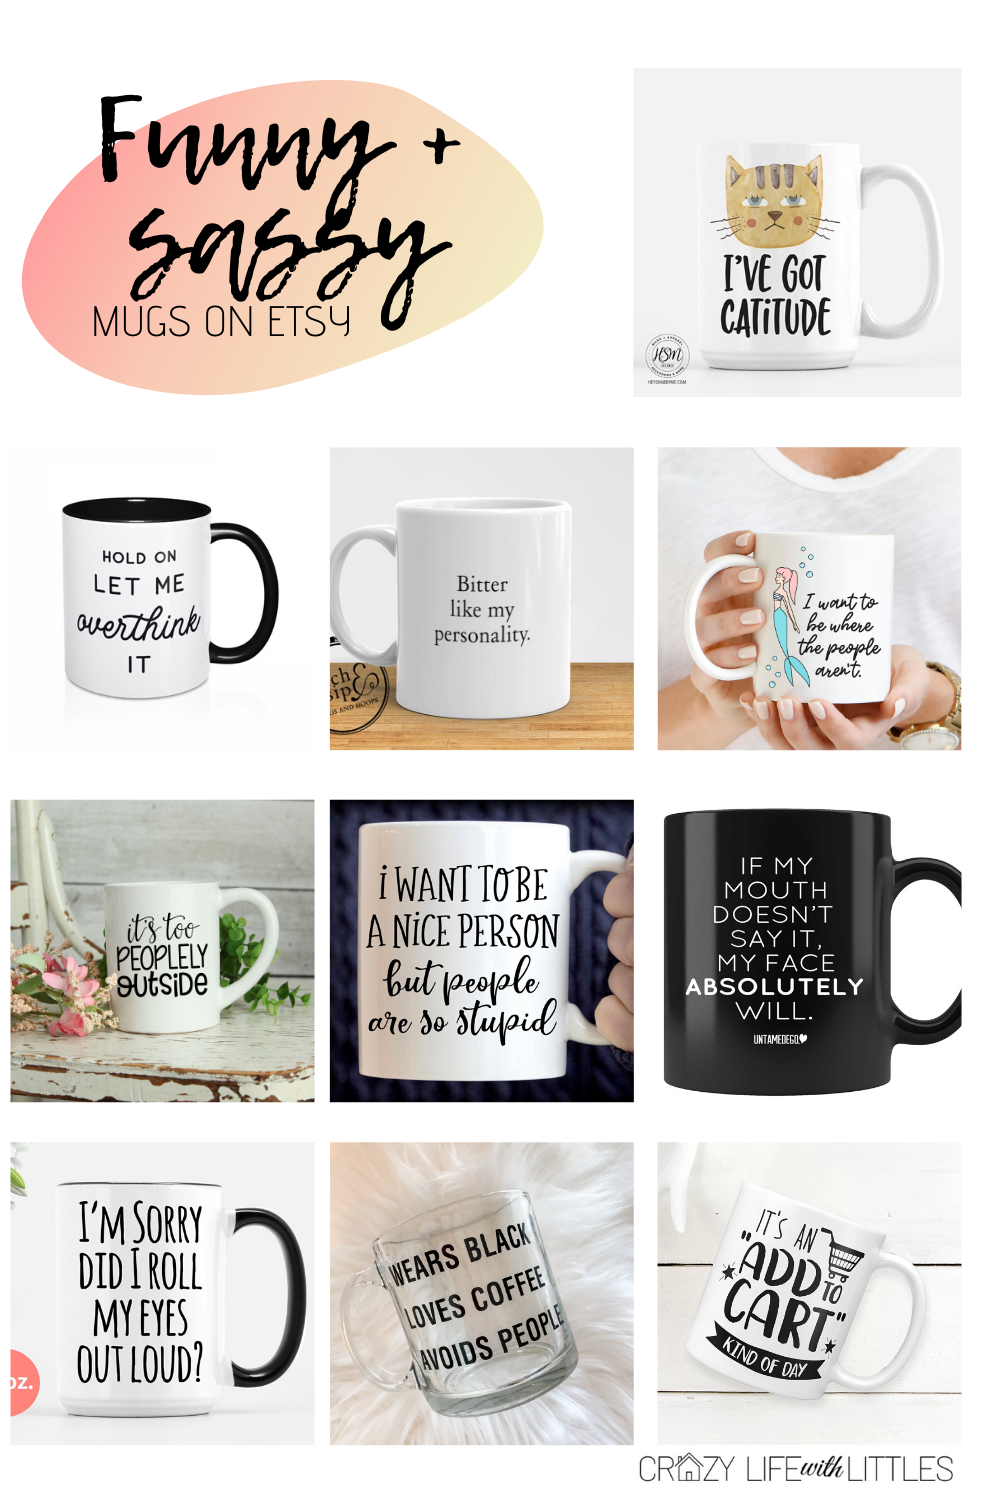 Funny Etsy Mugs, Wears Black Loves Coffee Avoids People, cat mugs, snarky mugs, funny mugs, sassy mugs